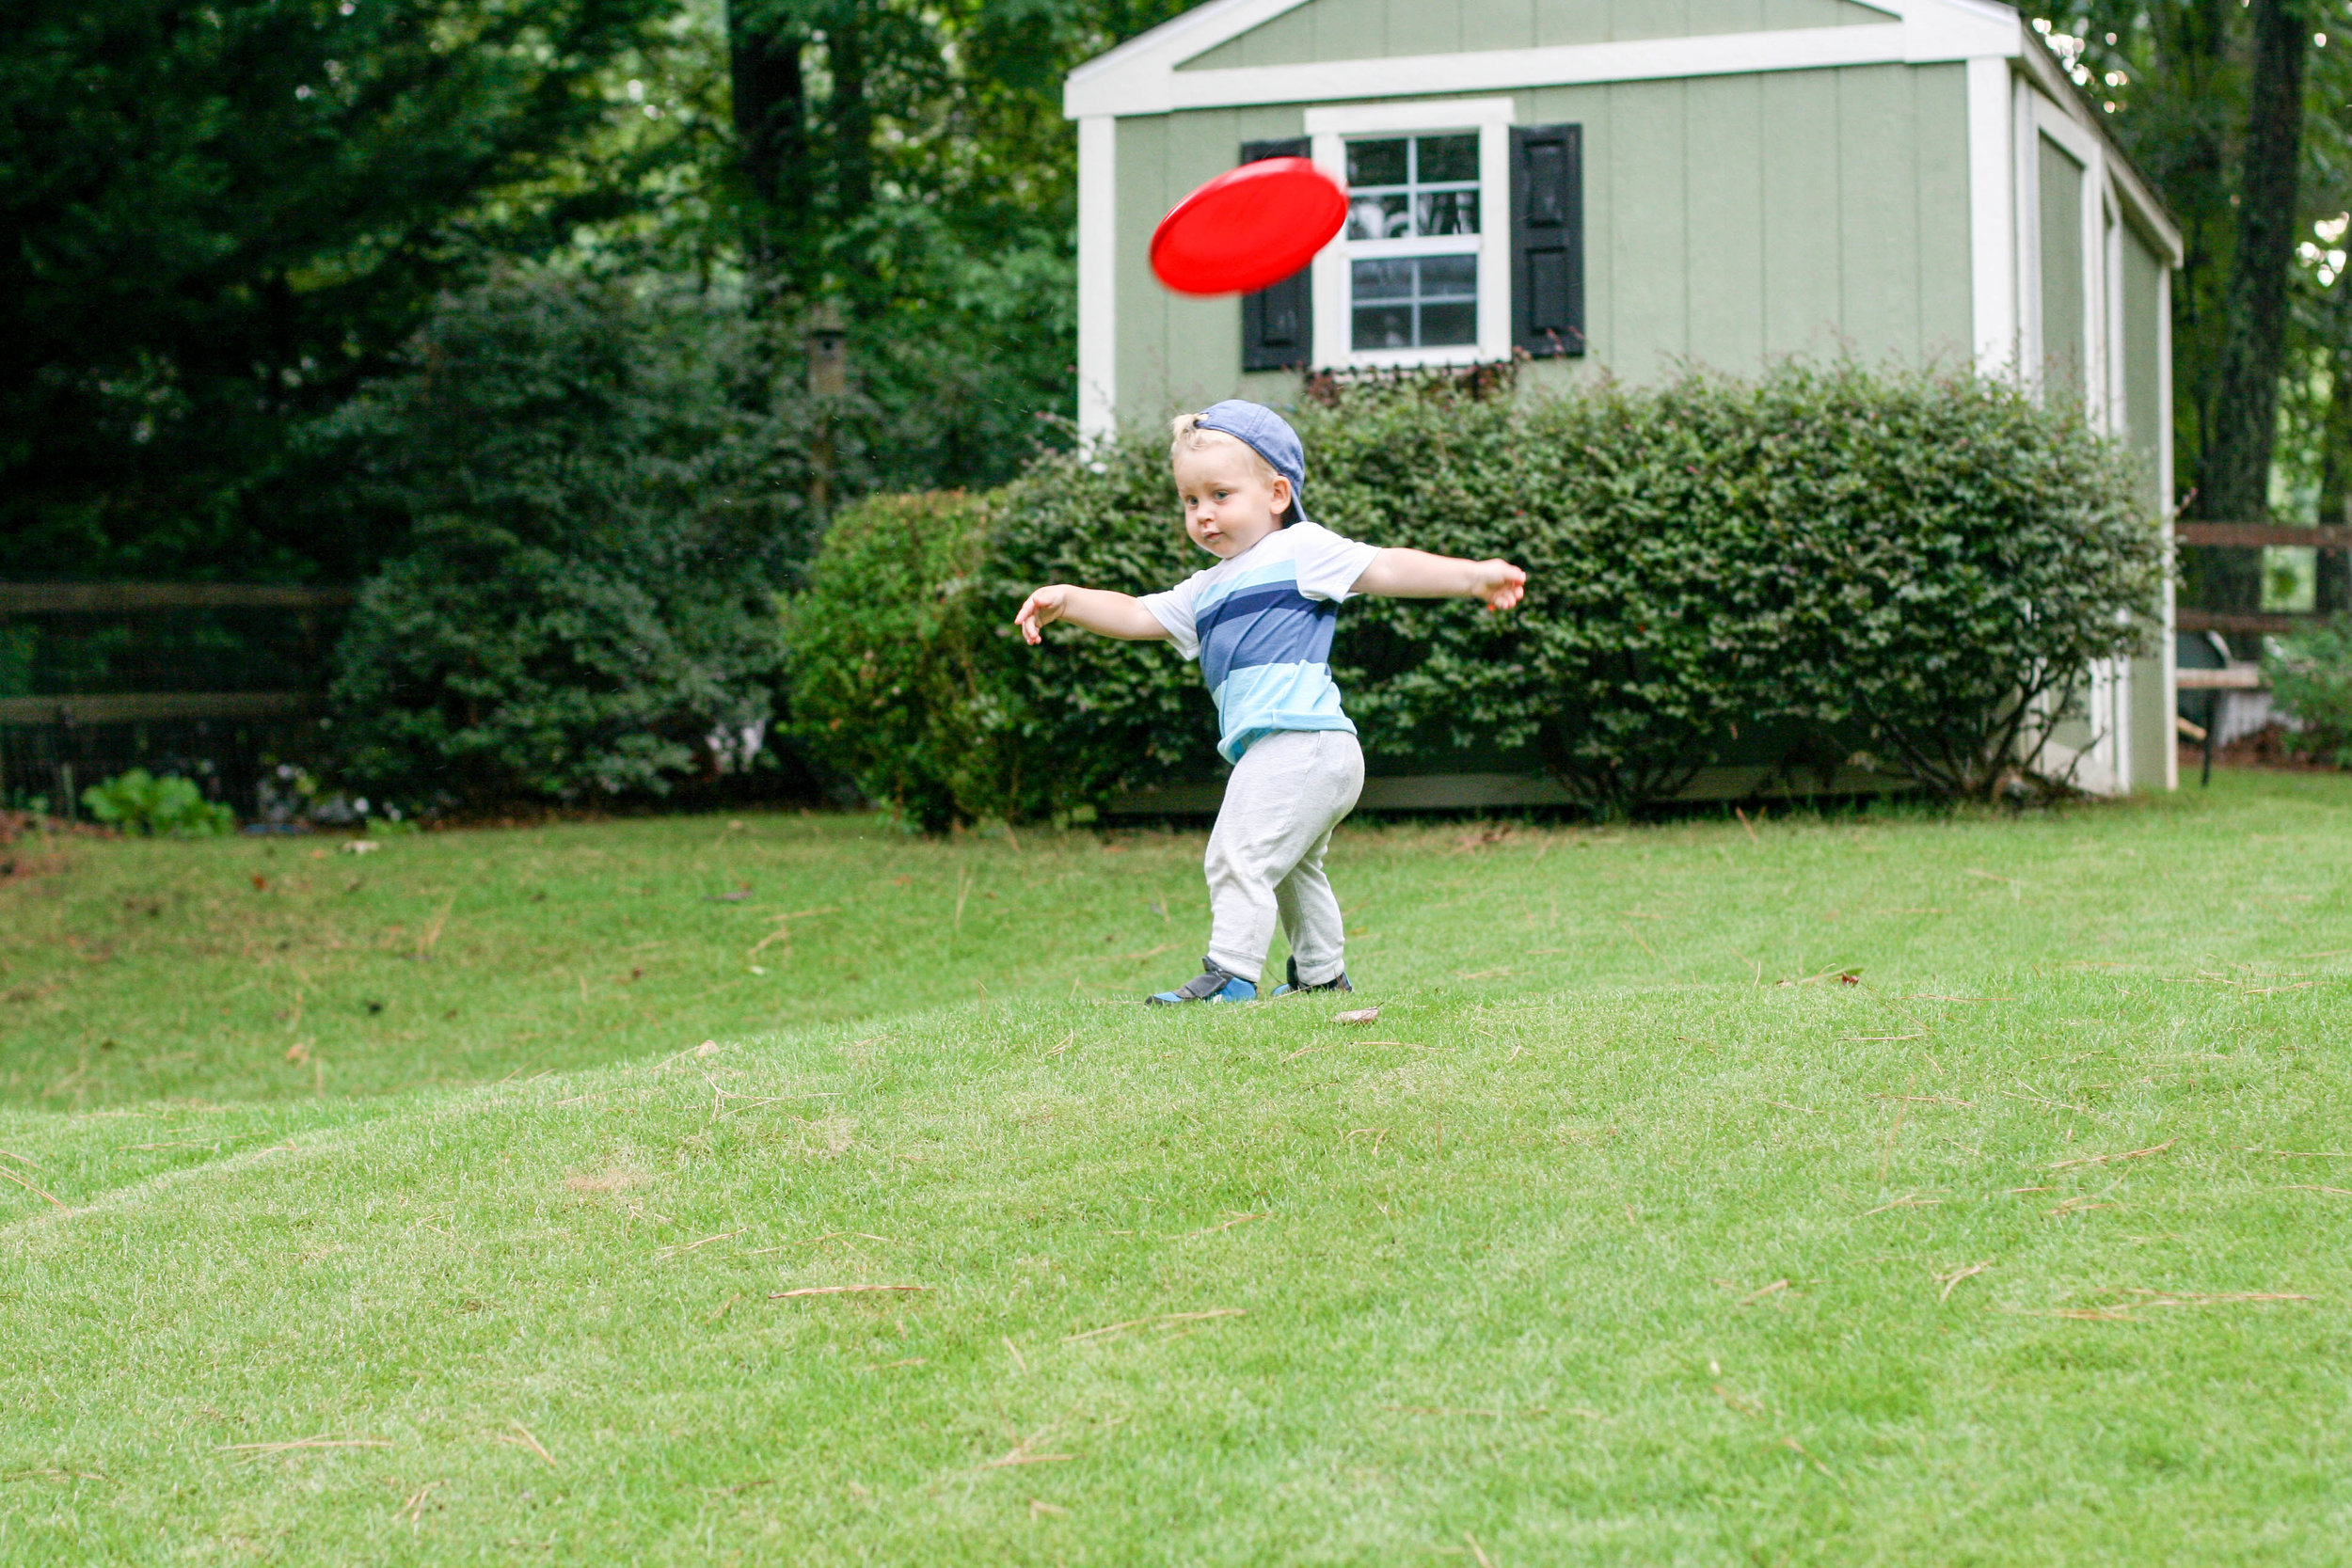 Everett learning to throw a frisbee last summer. He makes me laugh so much.